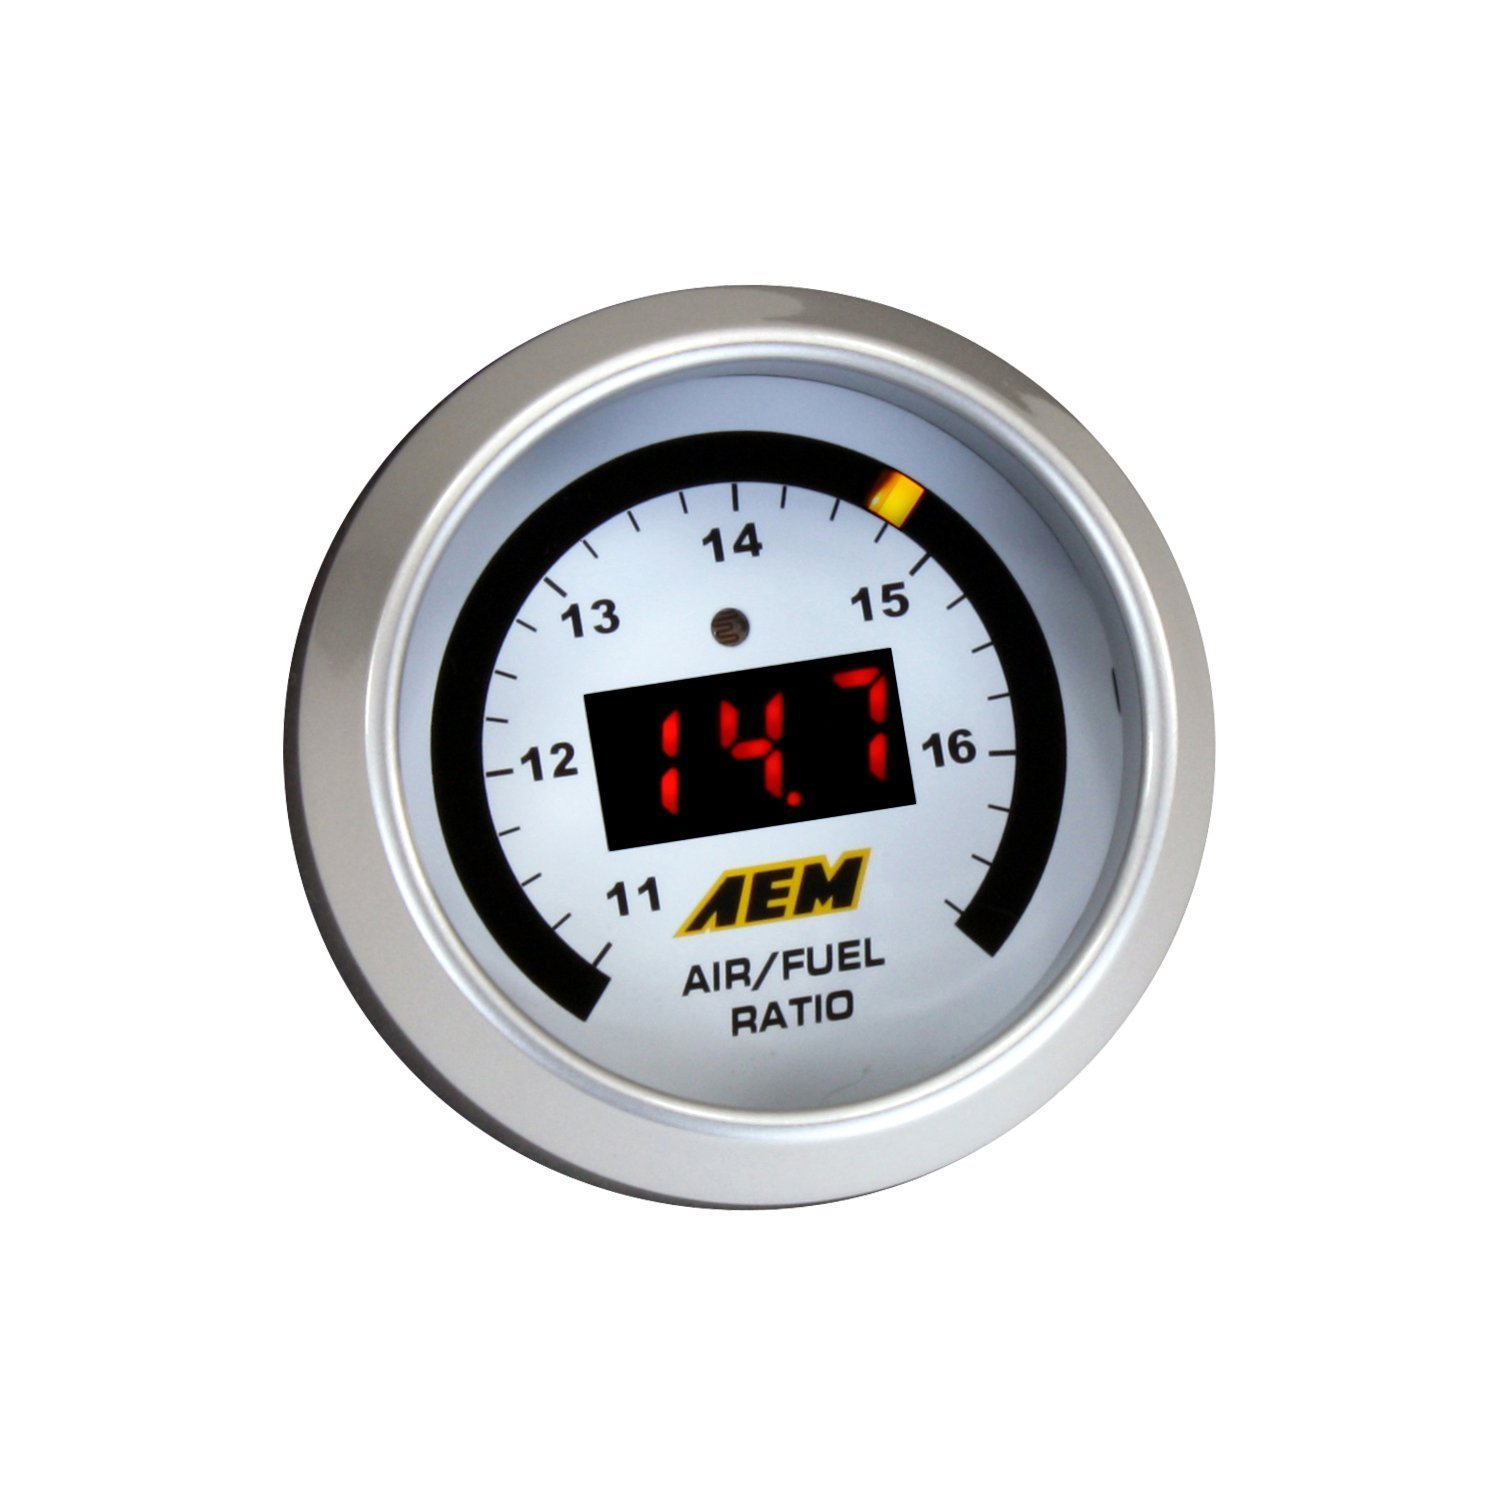 AEM (30-4110) UEGO Air/Fuel Ratio Gauge by AEM